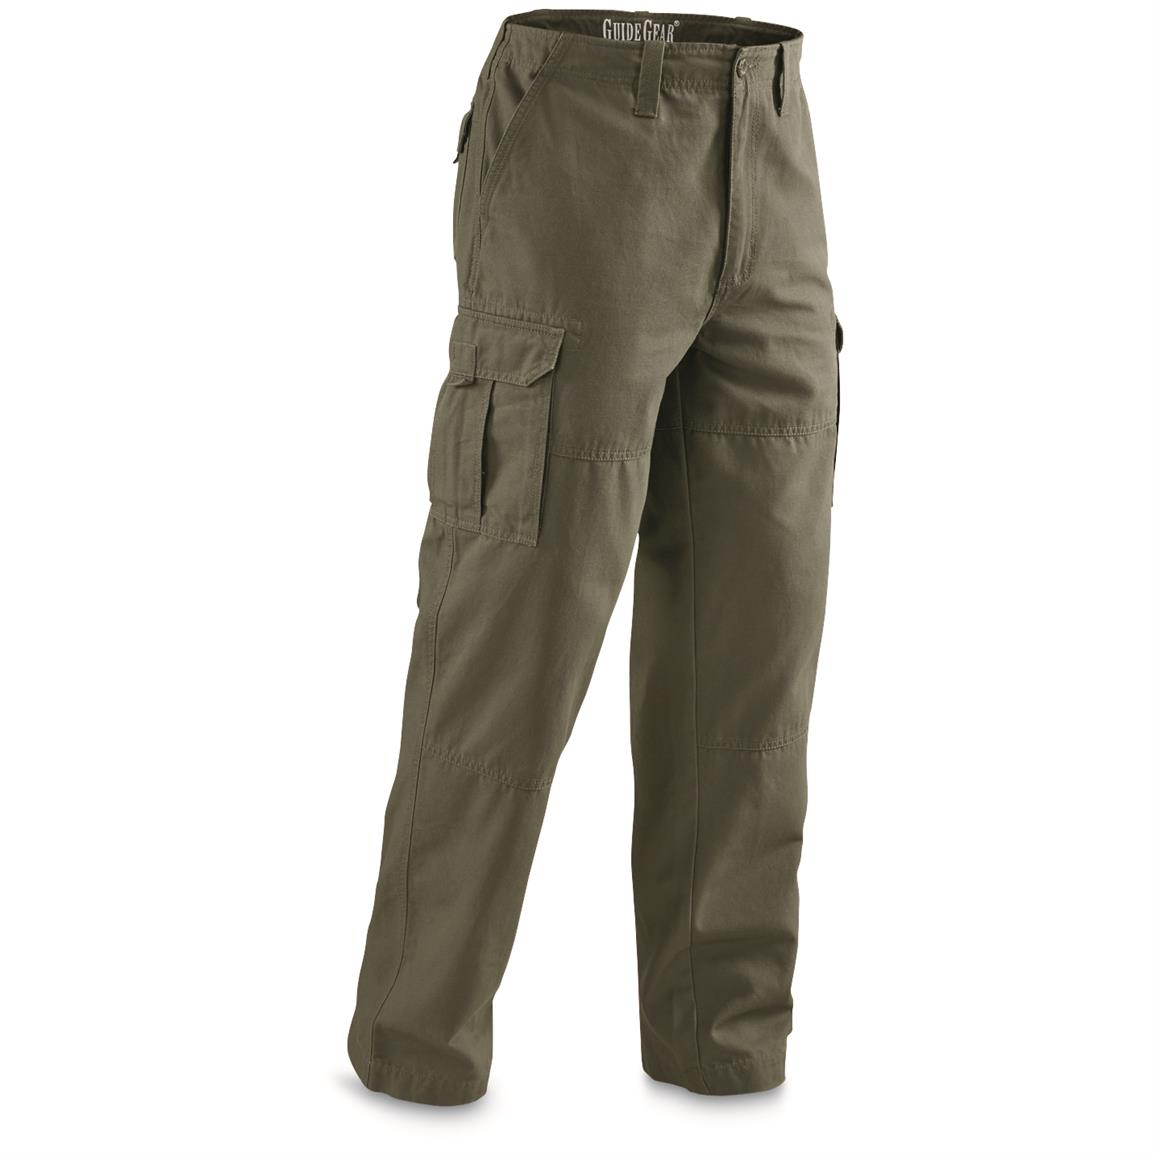 Guide Gear Men's Outdoor Cargo Pants, Olive